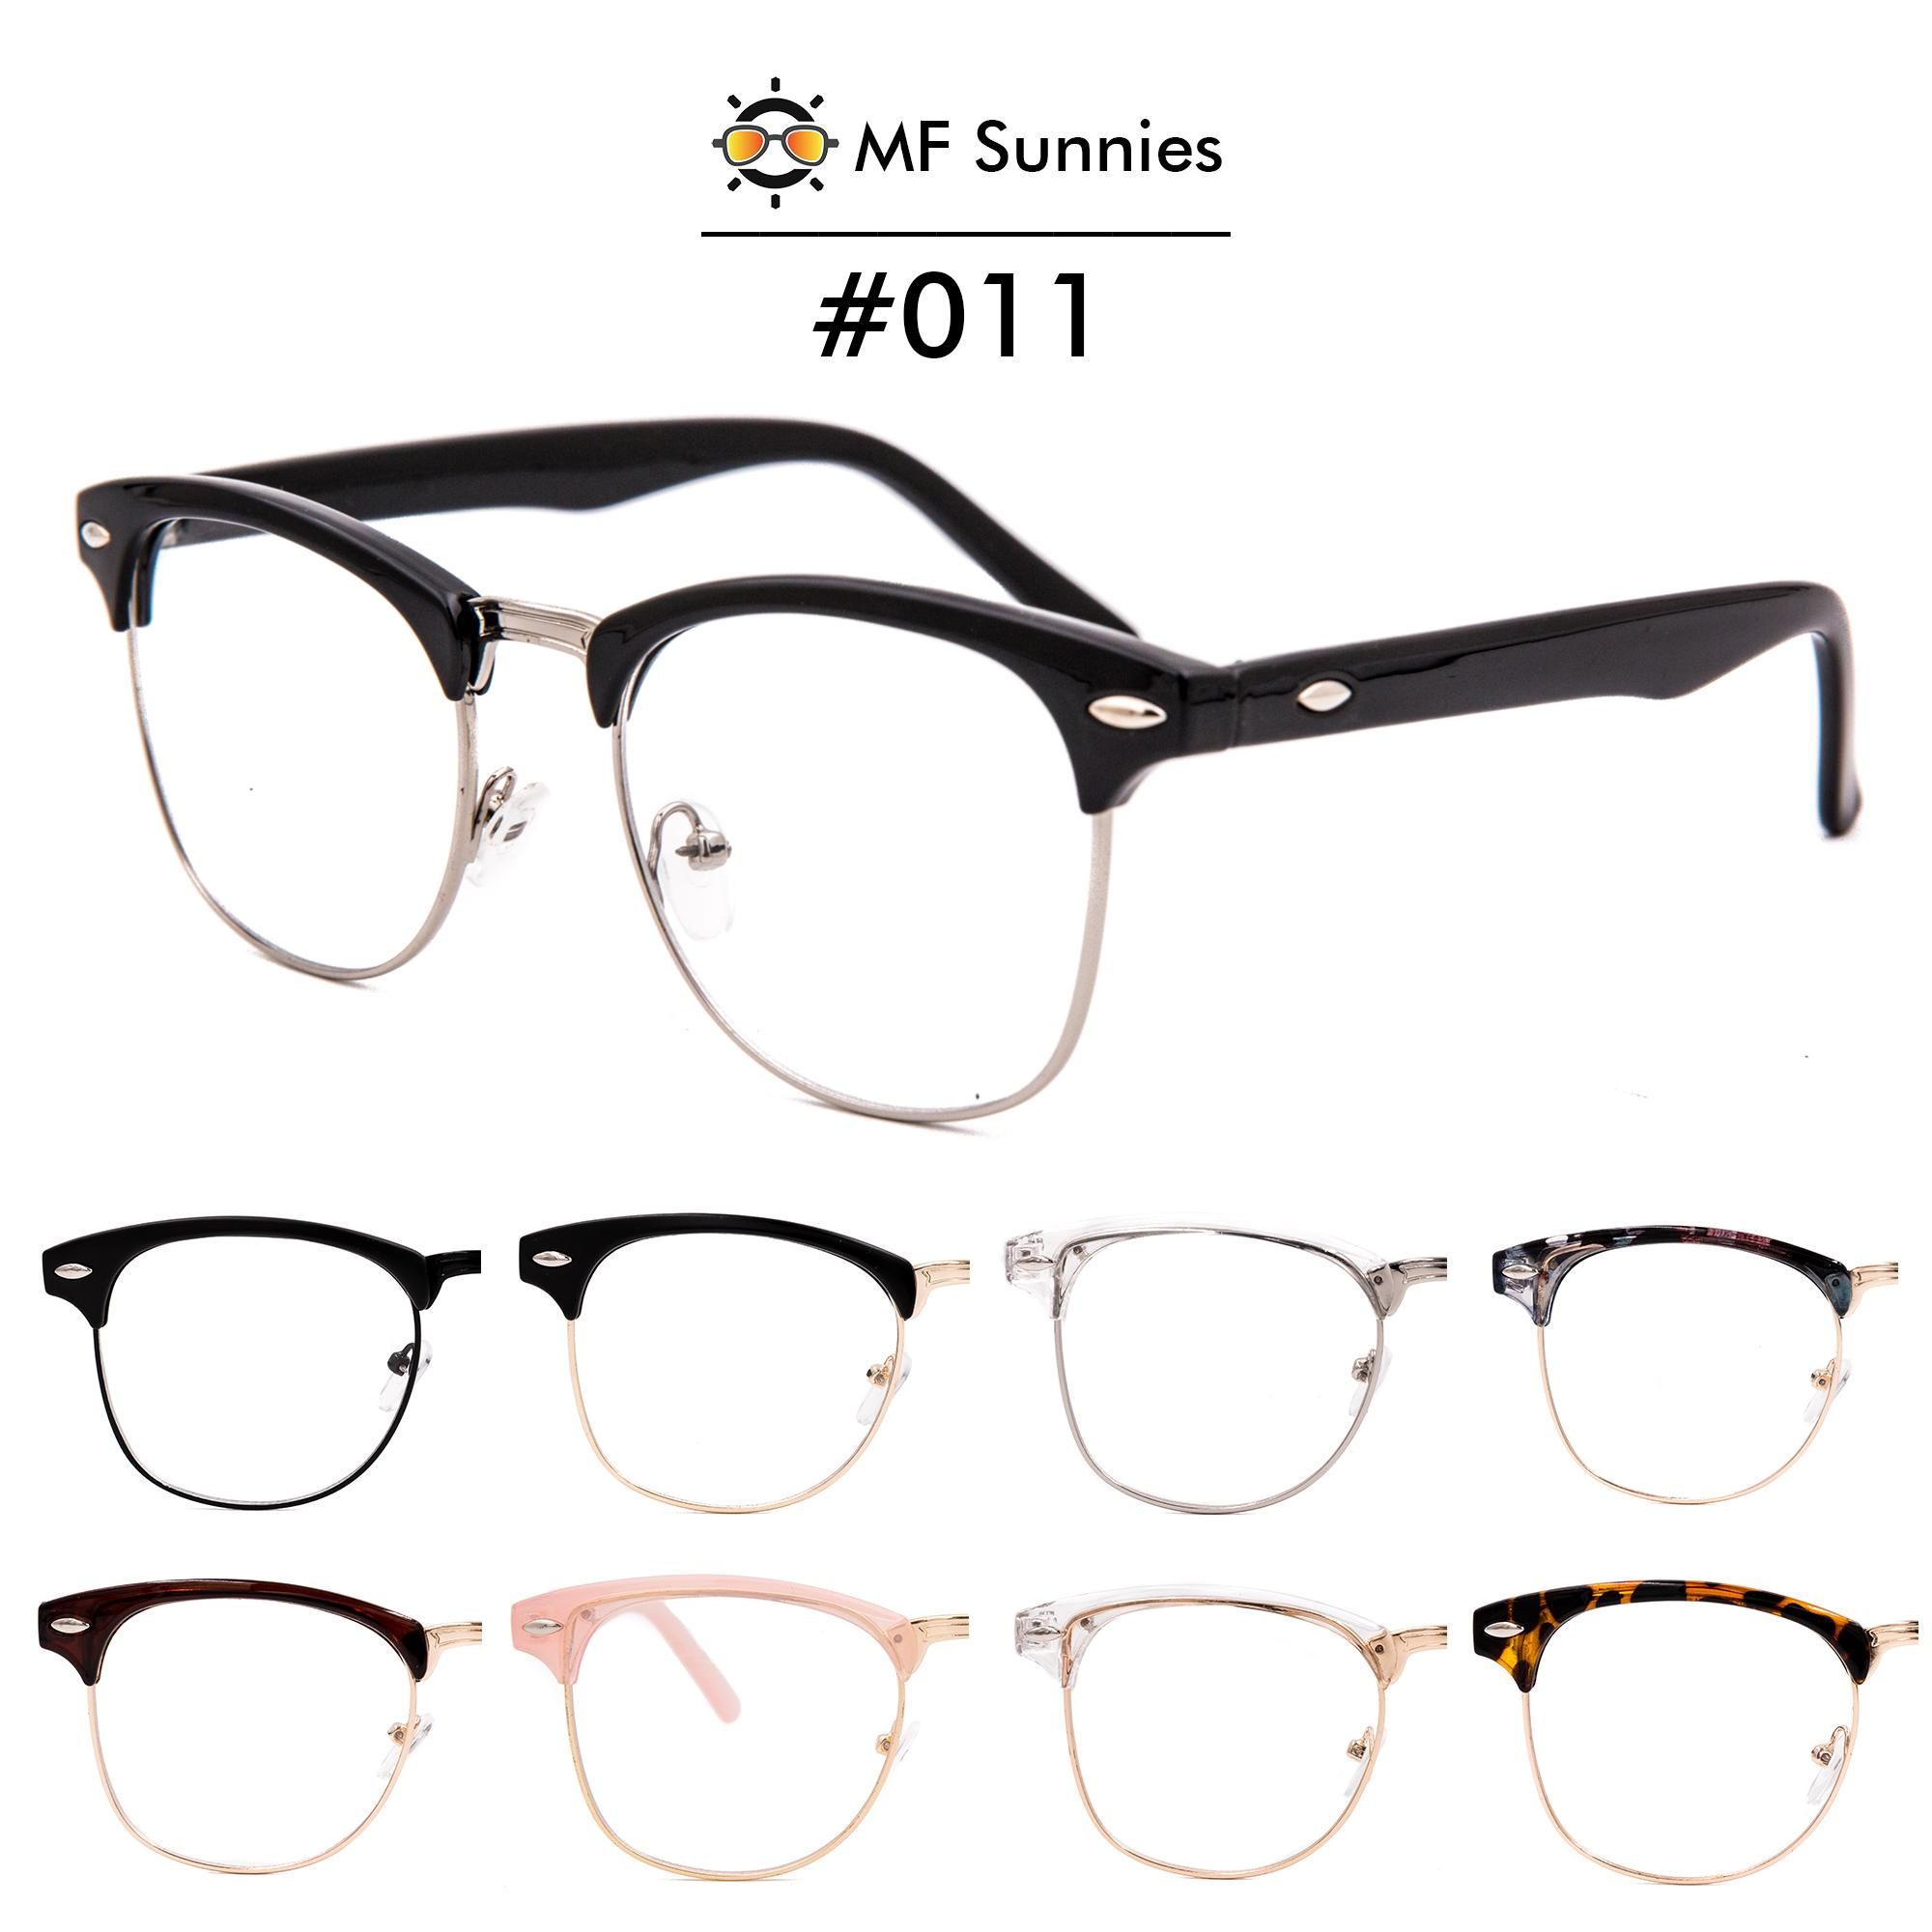 7f9f63eba1 Glasses for sale - Eyewear online brands